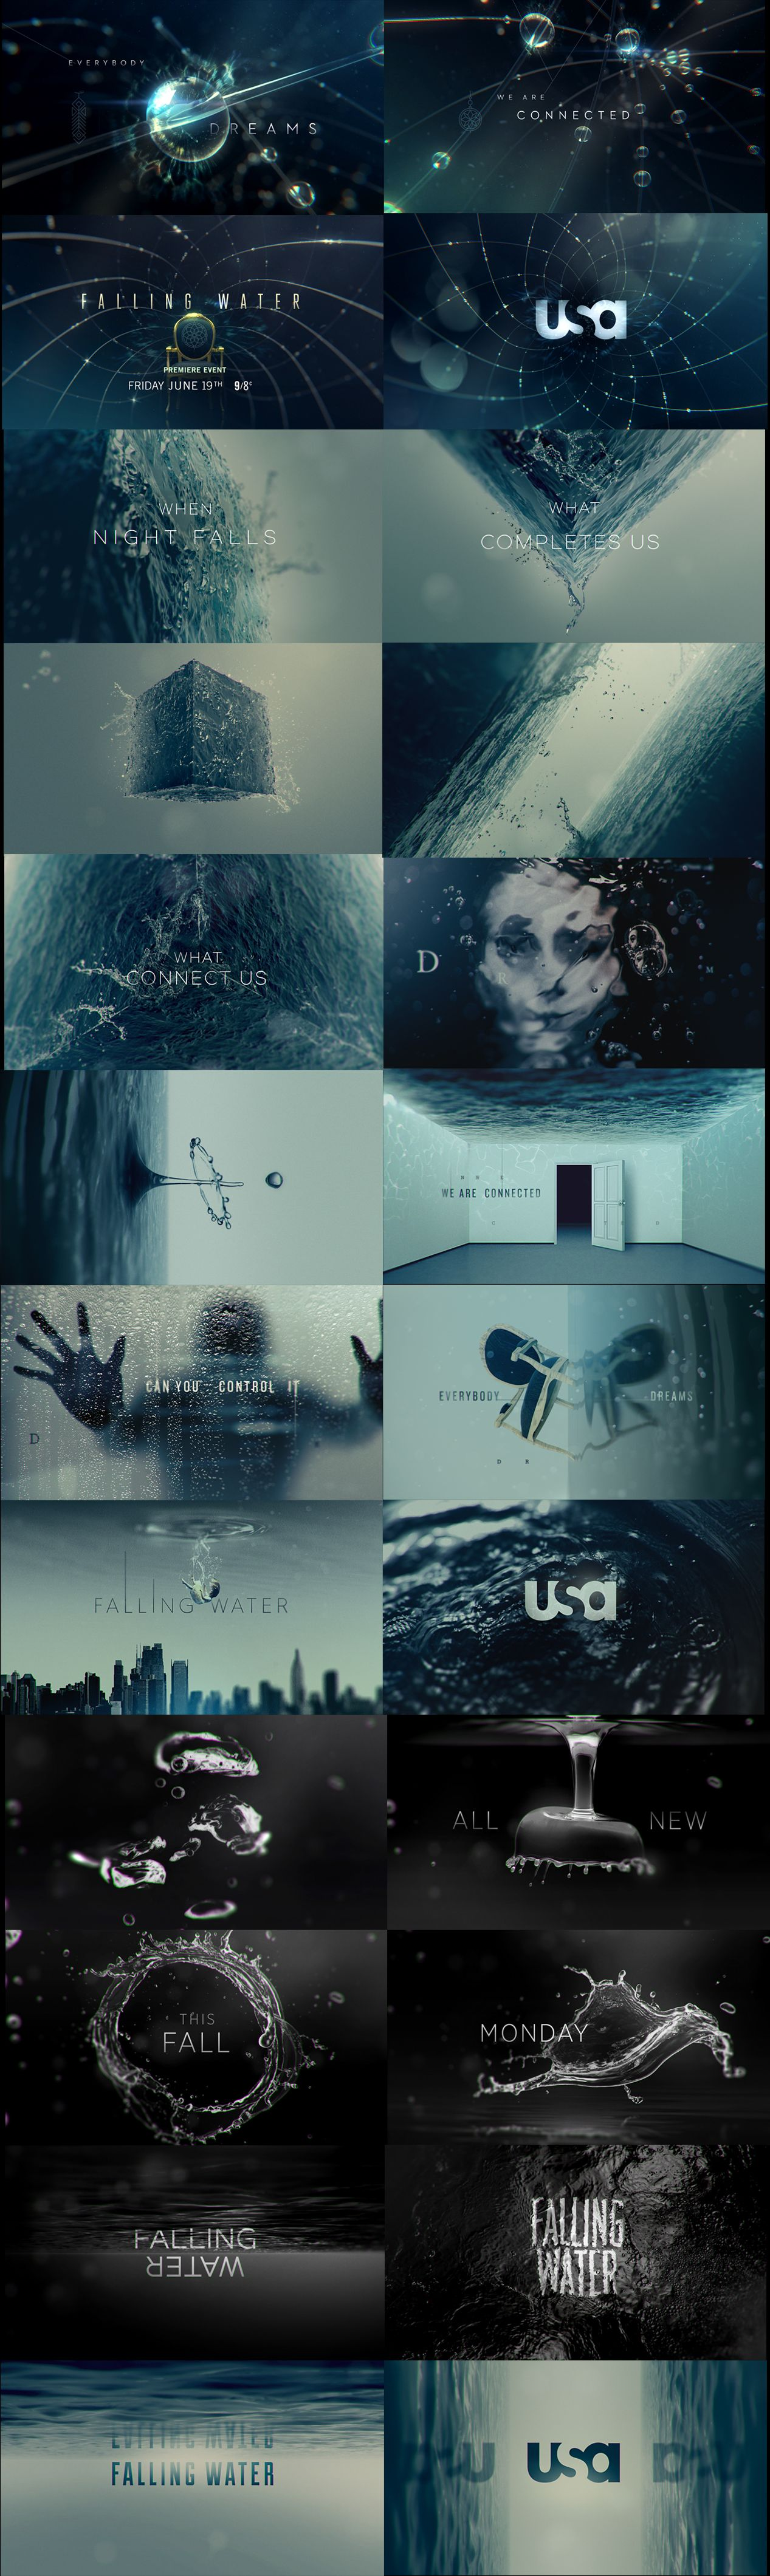 motion graphics/ storyboards/ styleframes   Falling Water — PROMO CONCEPTS for the USA TV Show #motiongraphic